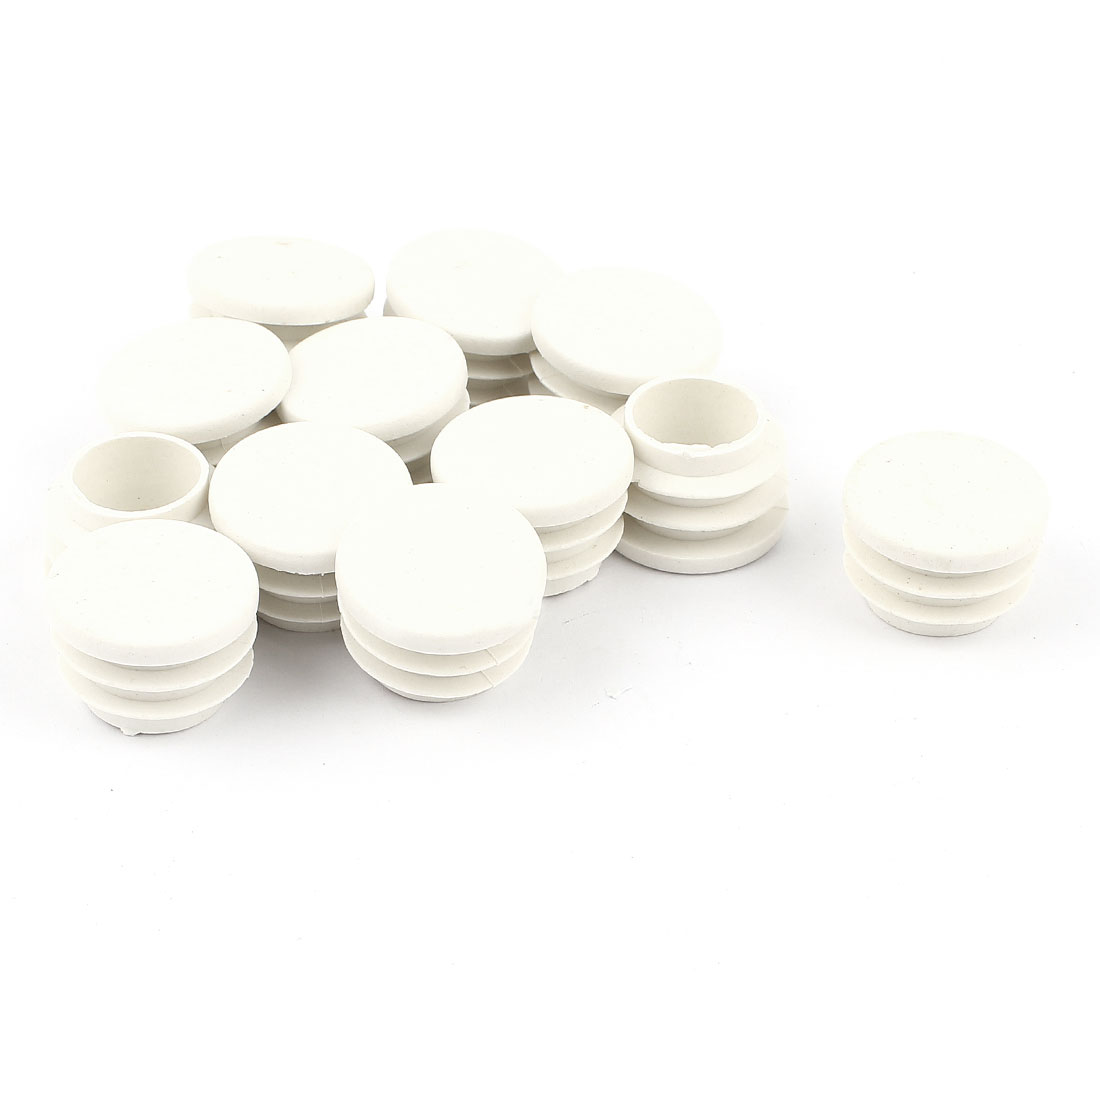 12 Pcs White Plastic 22mm Dia Round Tubing Tube Insert Caps Covers